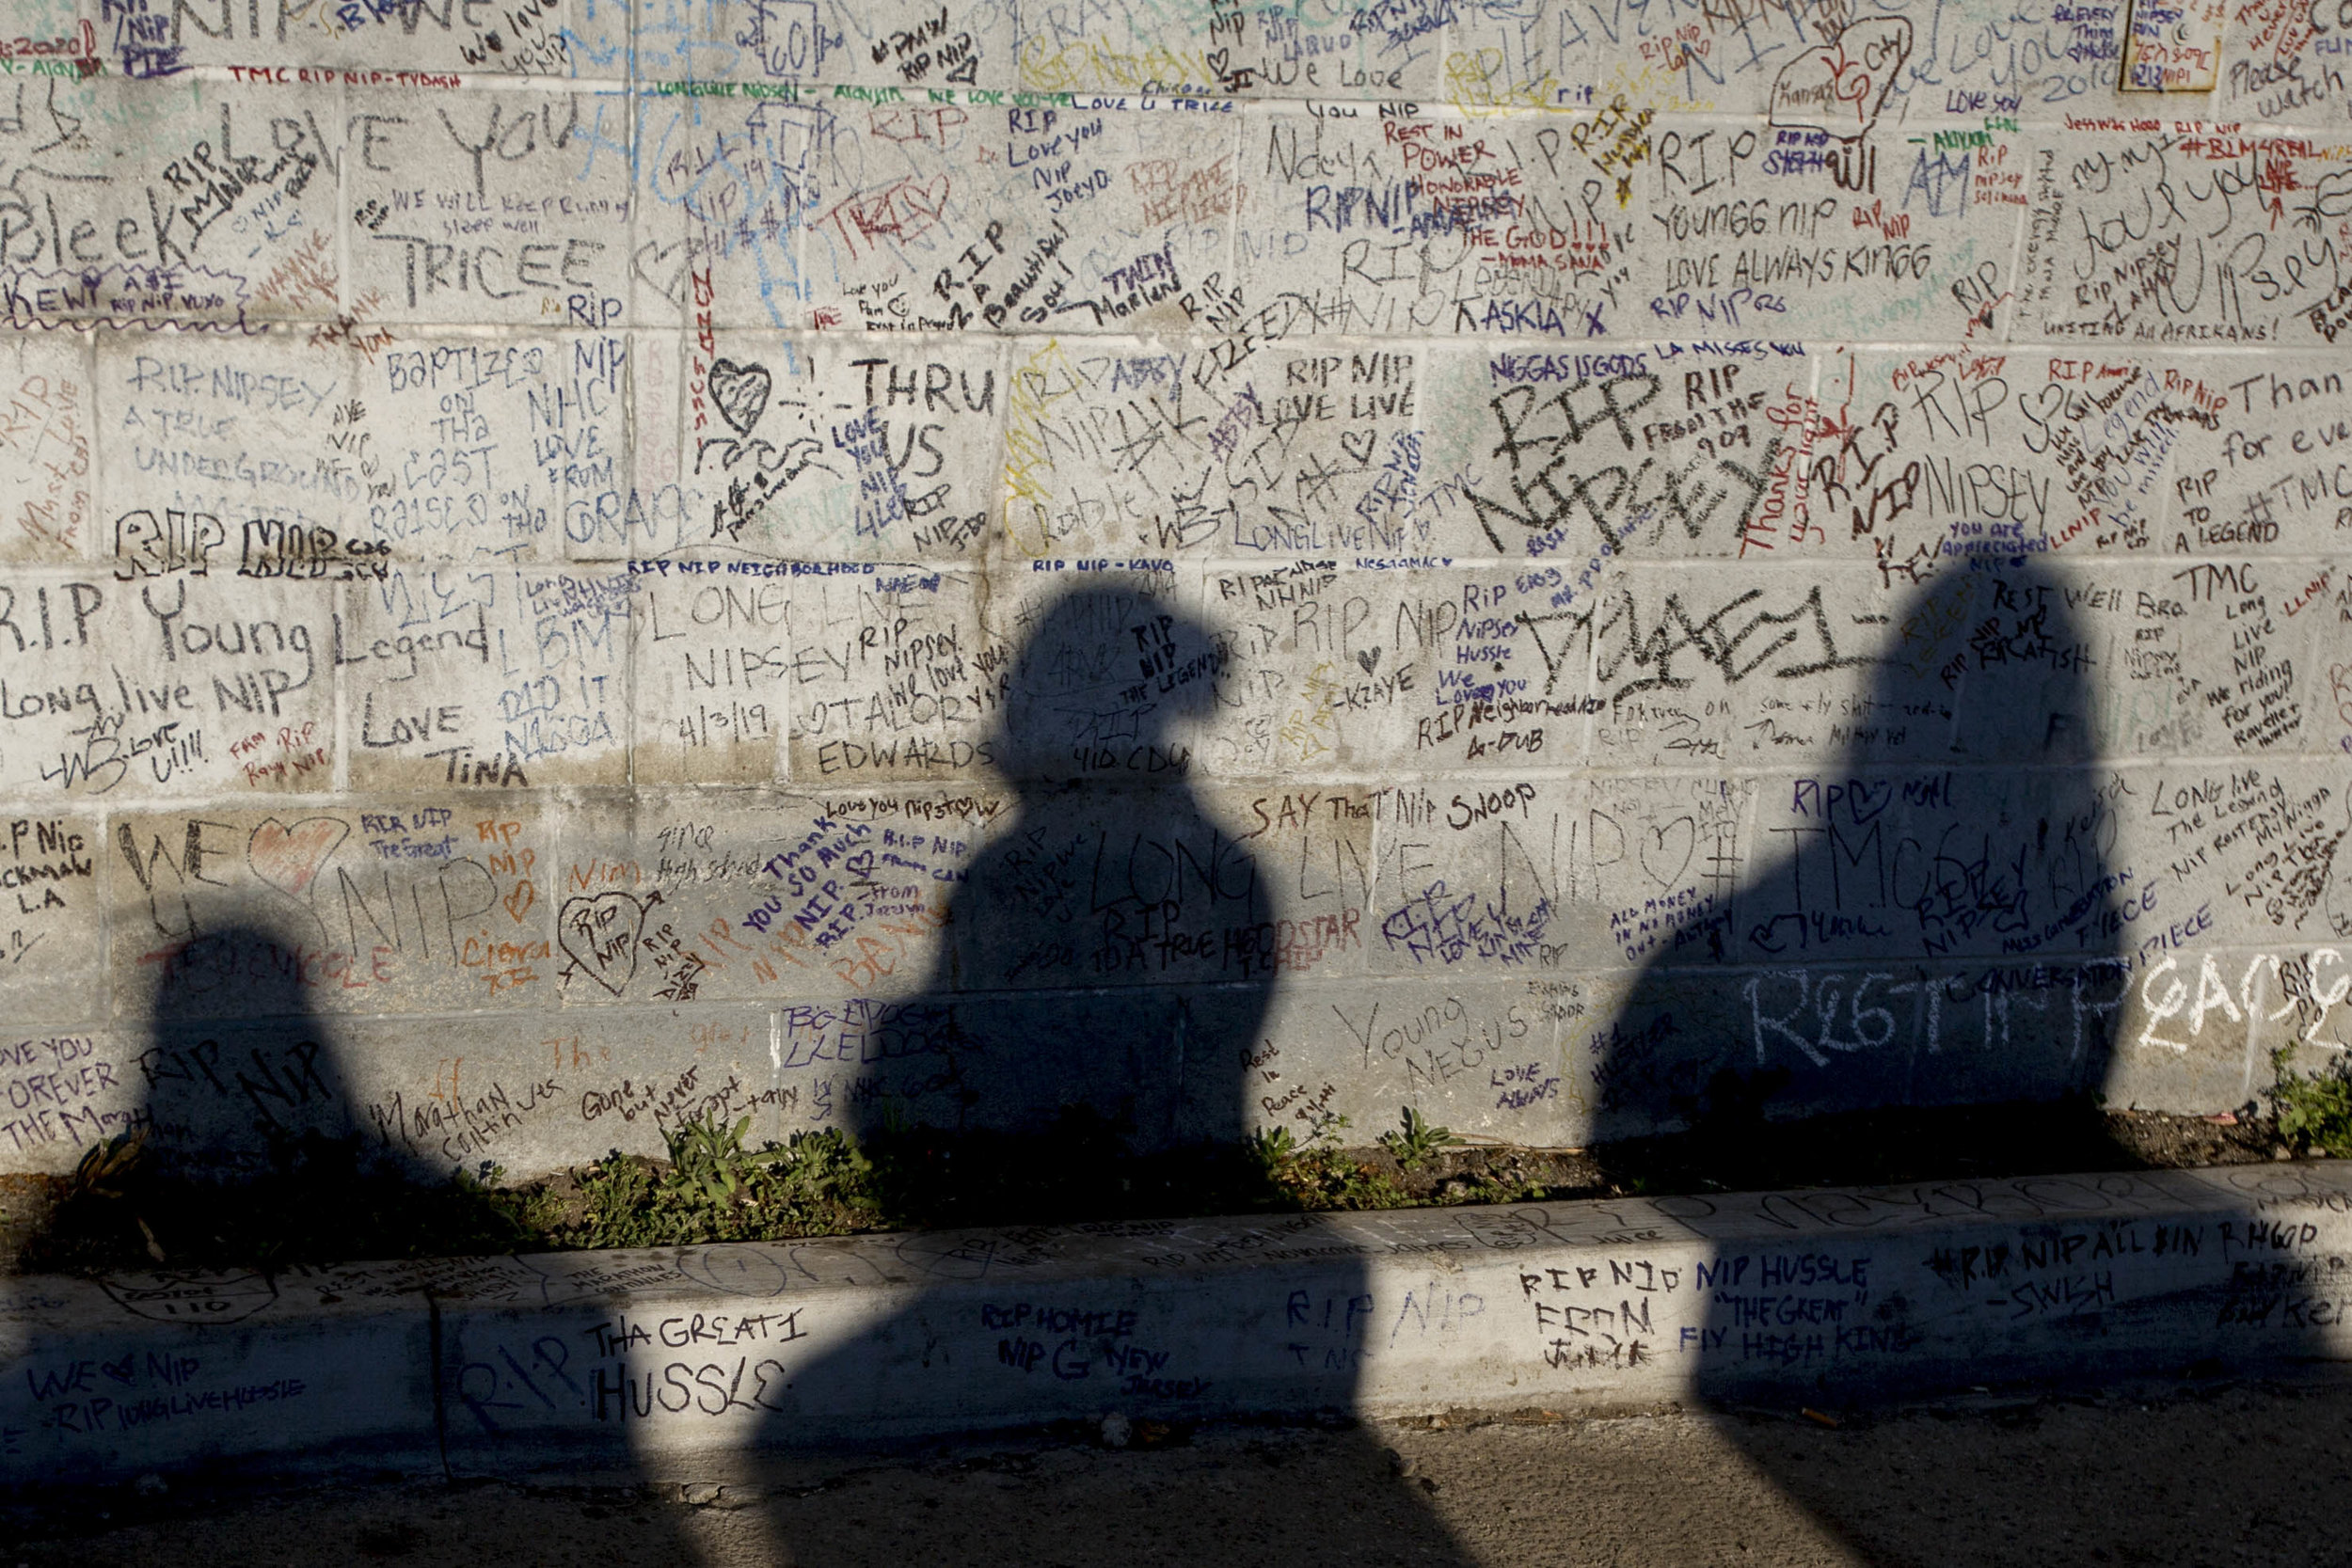 The shadows of people reading the many hand written messages commemorating the life of Nipsey Hussle are projected over a wall at the makeshift memorial near The Marathon Clothing store on Slauson Avenue in Los Angeles, California on Wednesday, April 6, 2019. The 33-year-old rapper was murdered on March 31 in front of The Marathon Clothing store which he owned. (Jose Lopez)